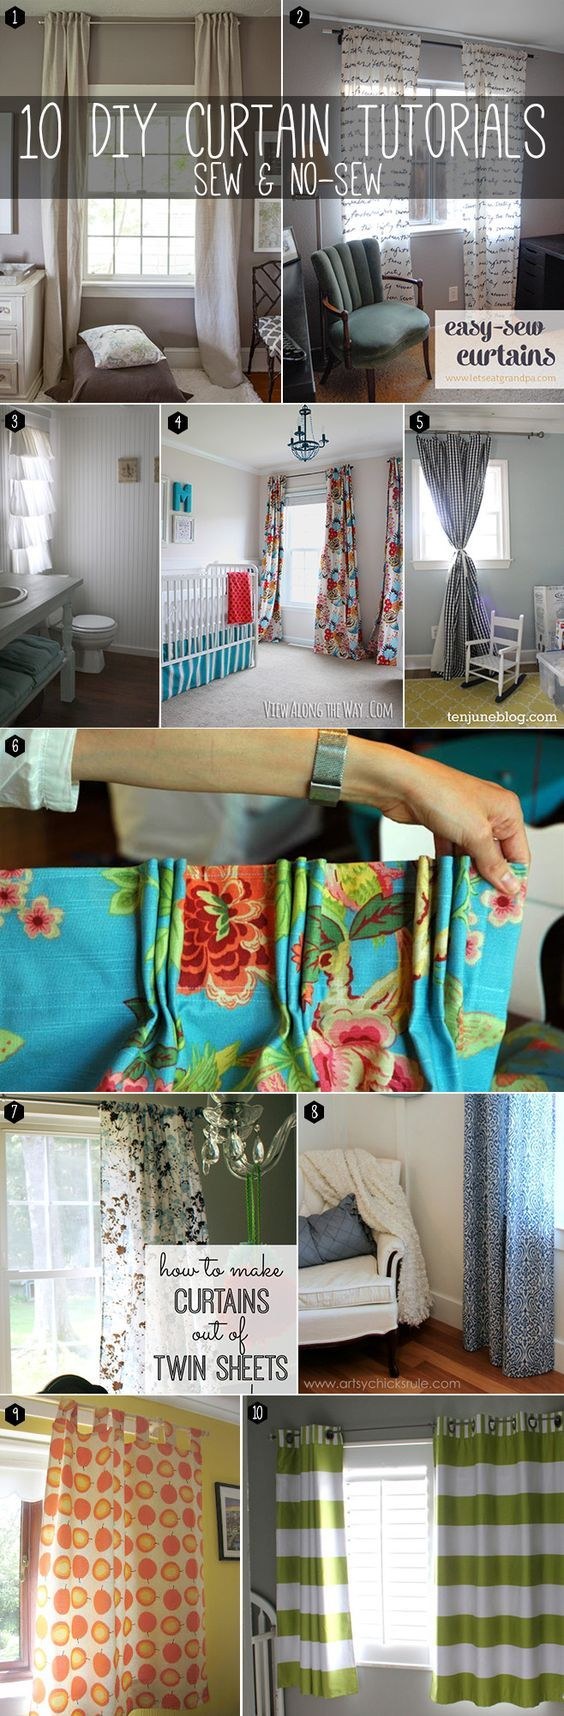 10 fantastic DIY curtain tutorials. Sew & NO-sew!